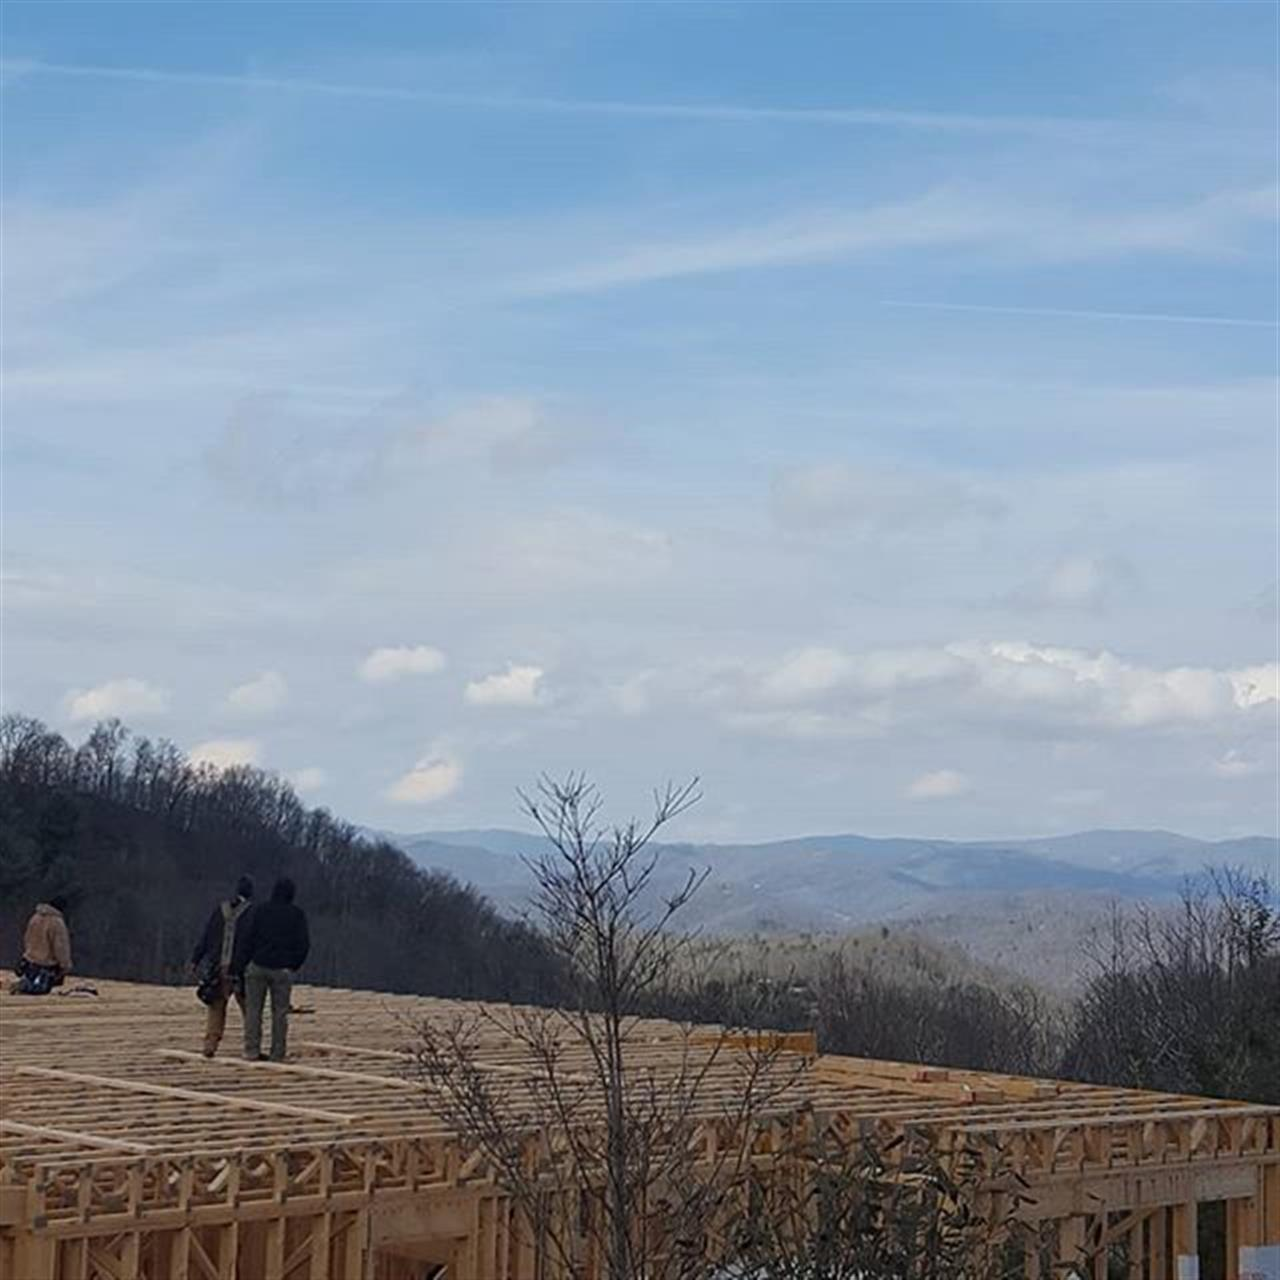 I was previewing a home in Echota today and took some time to look at the new construction at the ridge top. They are building a great product and the views.......extraordinary! Pardon the photos from my car.....but let me know if you'd like to take a look at this great community.  #CarlsonRealtors #LeadingRELocal #BlowingRock #Boone #HighCountryHomeSpecialist #RealEstate #NCHighCountry #NCMountains #Realtorlife #Echota #EchotaOnTheRidge